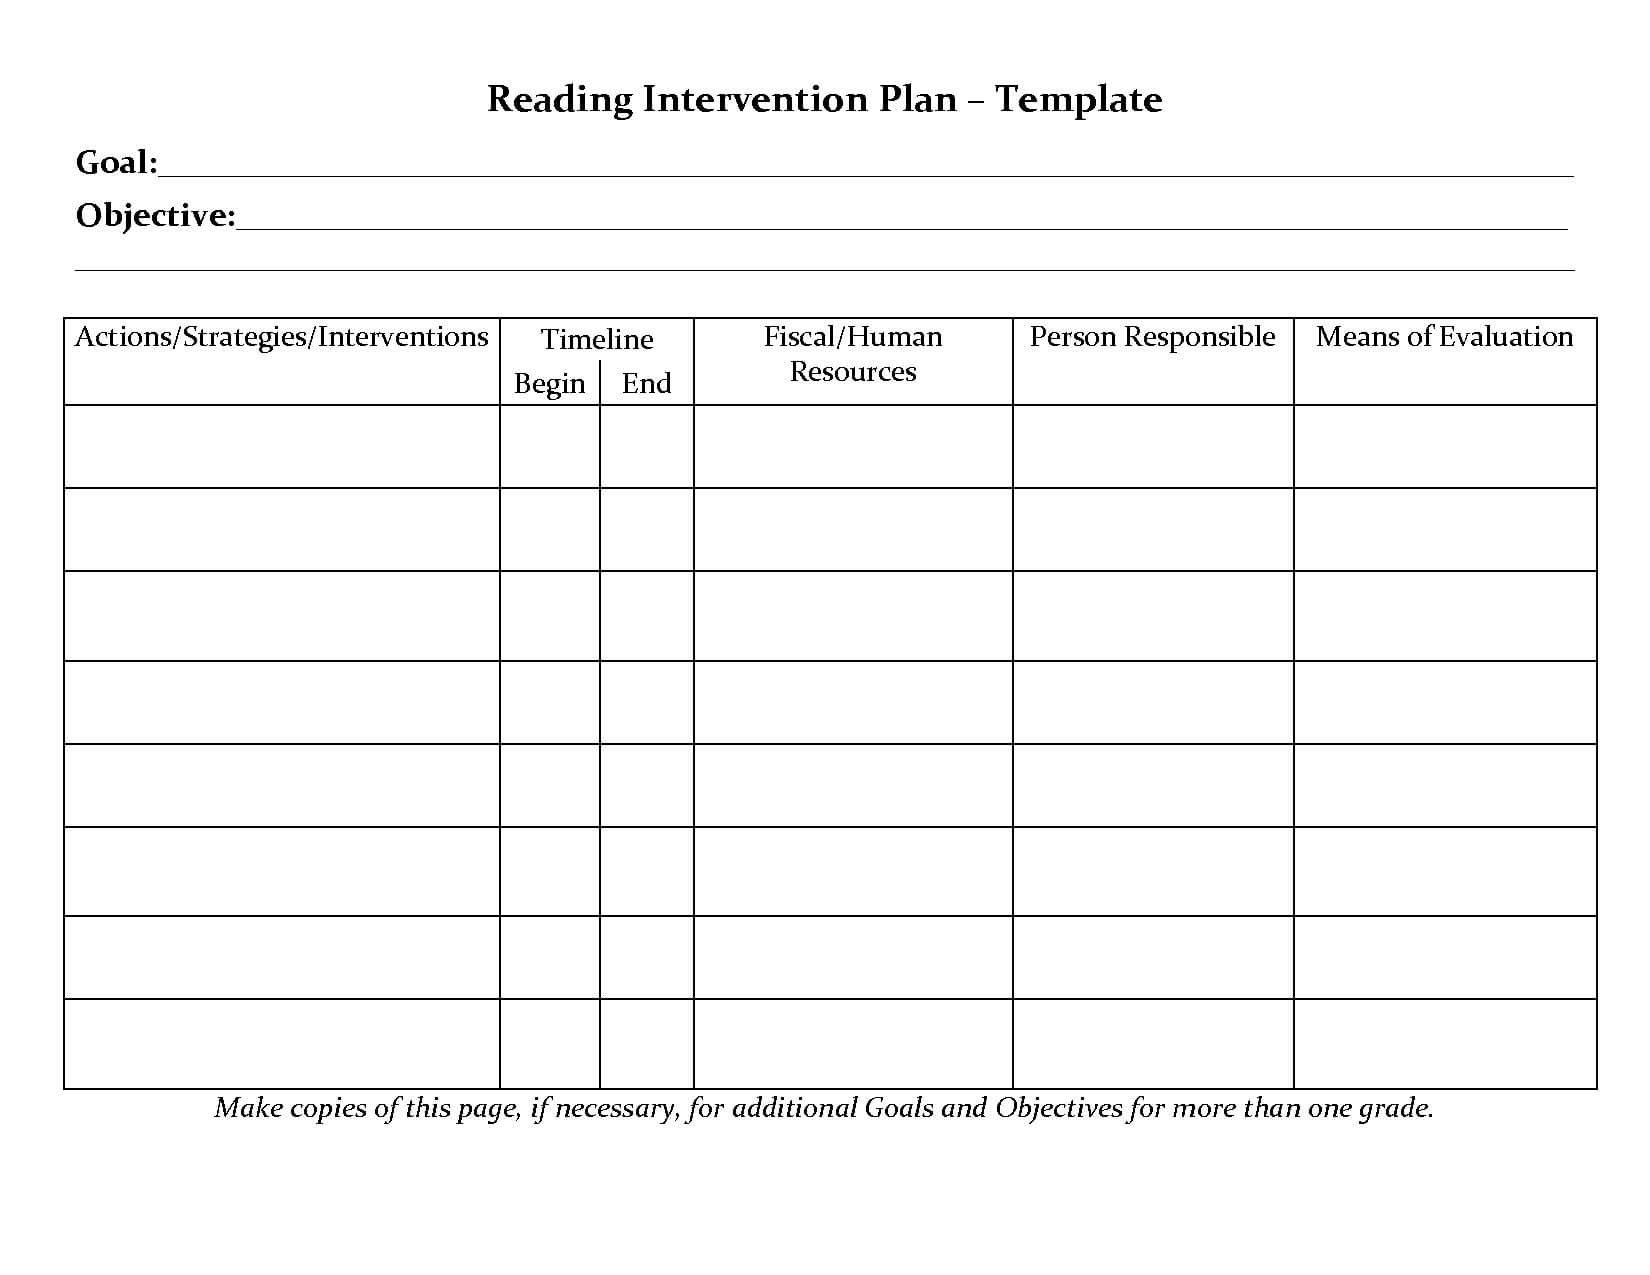 Student Planner Templates | Reading Intervention Plan Intended For Intervention Report Template